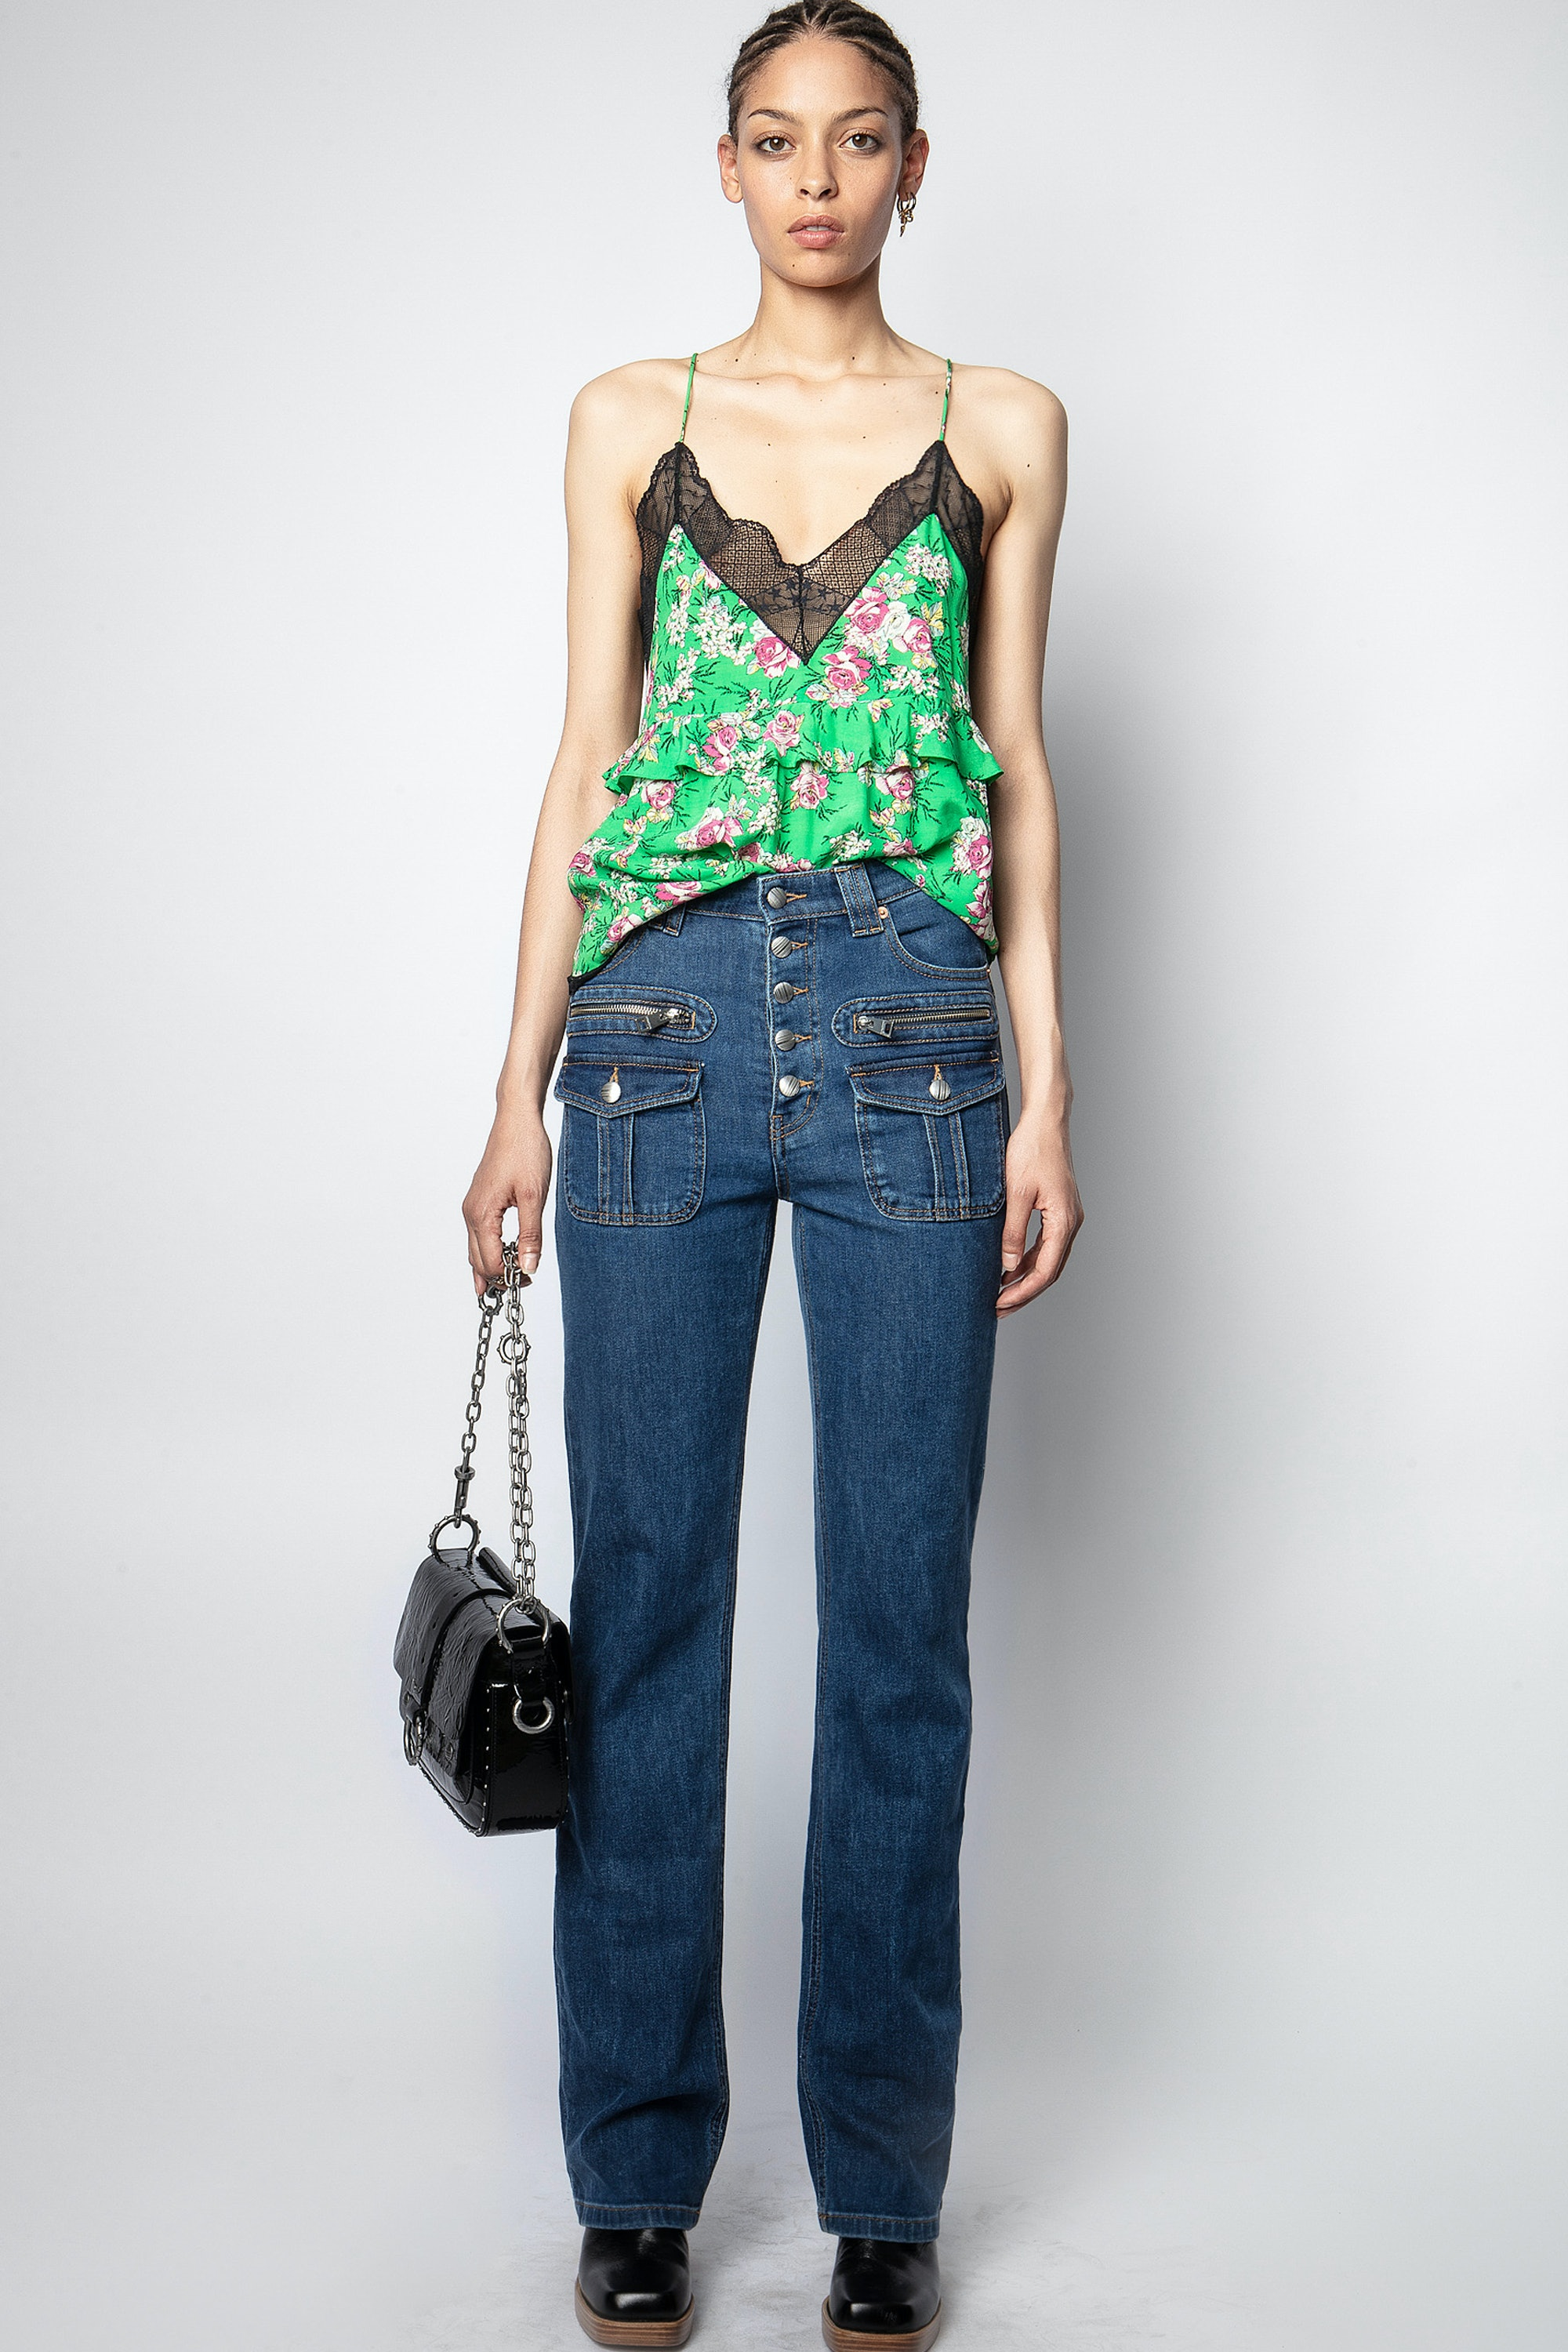 Charlie Pint Roses Camisole